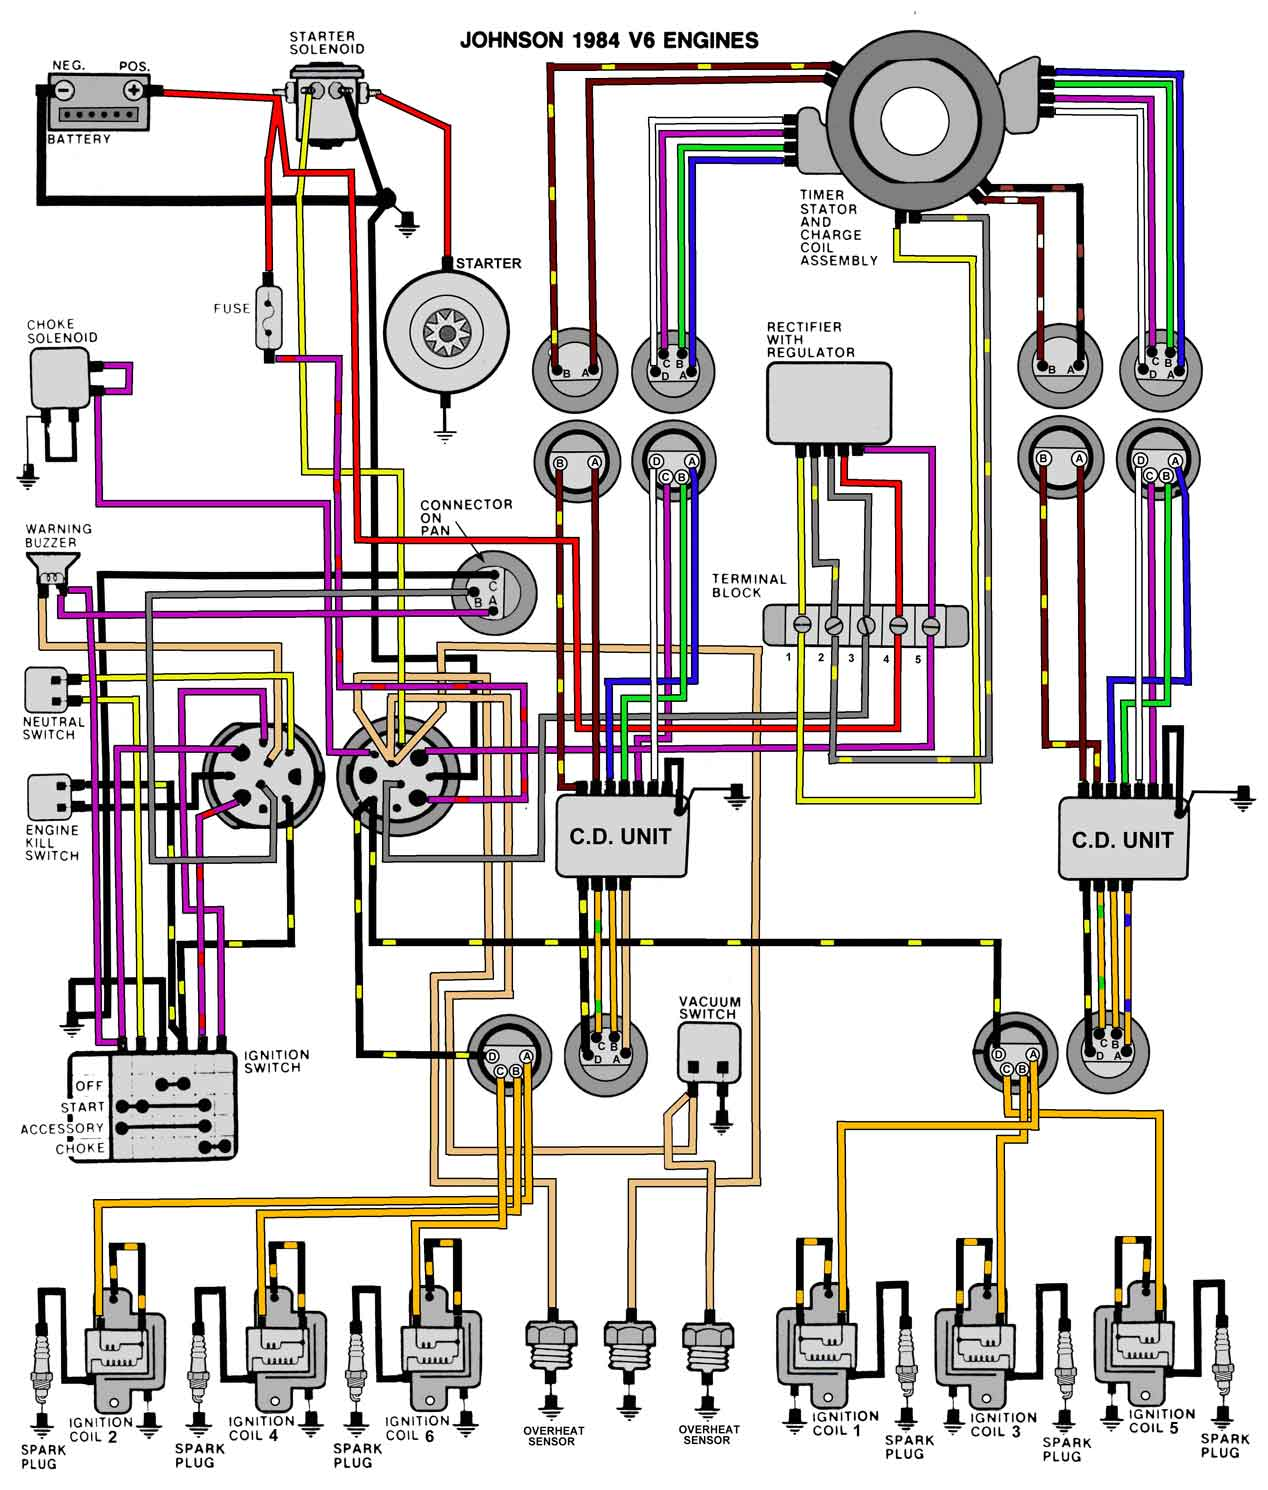 5005800 Brp Evinrude Ignition Switch Wiring Diagram | New ... on